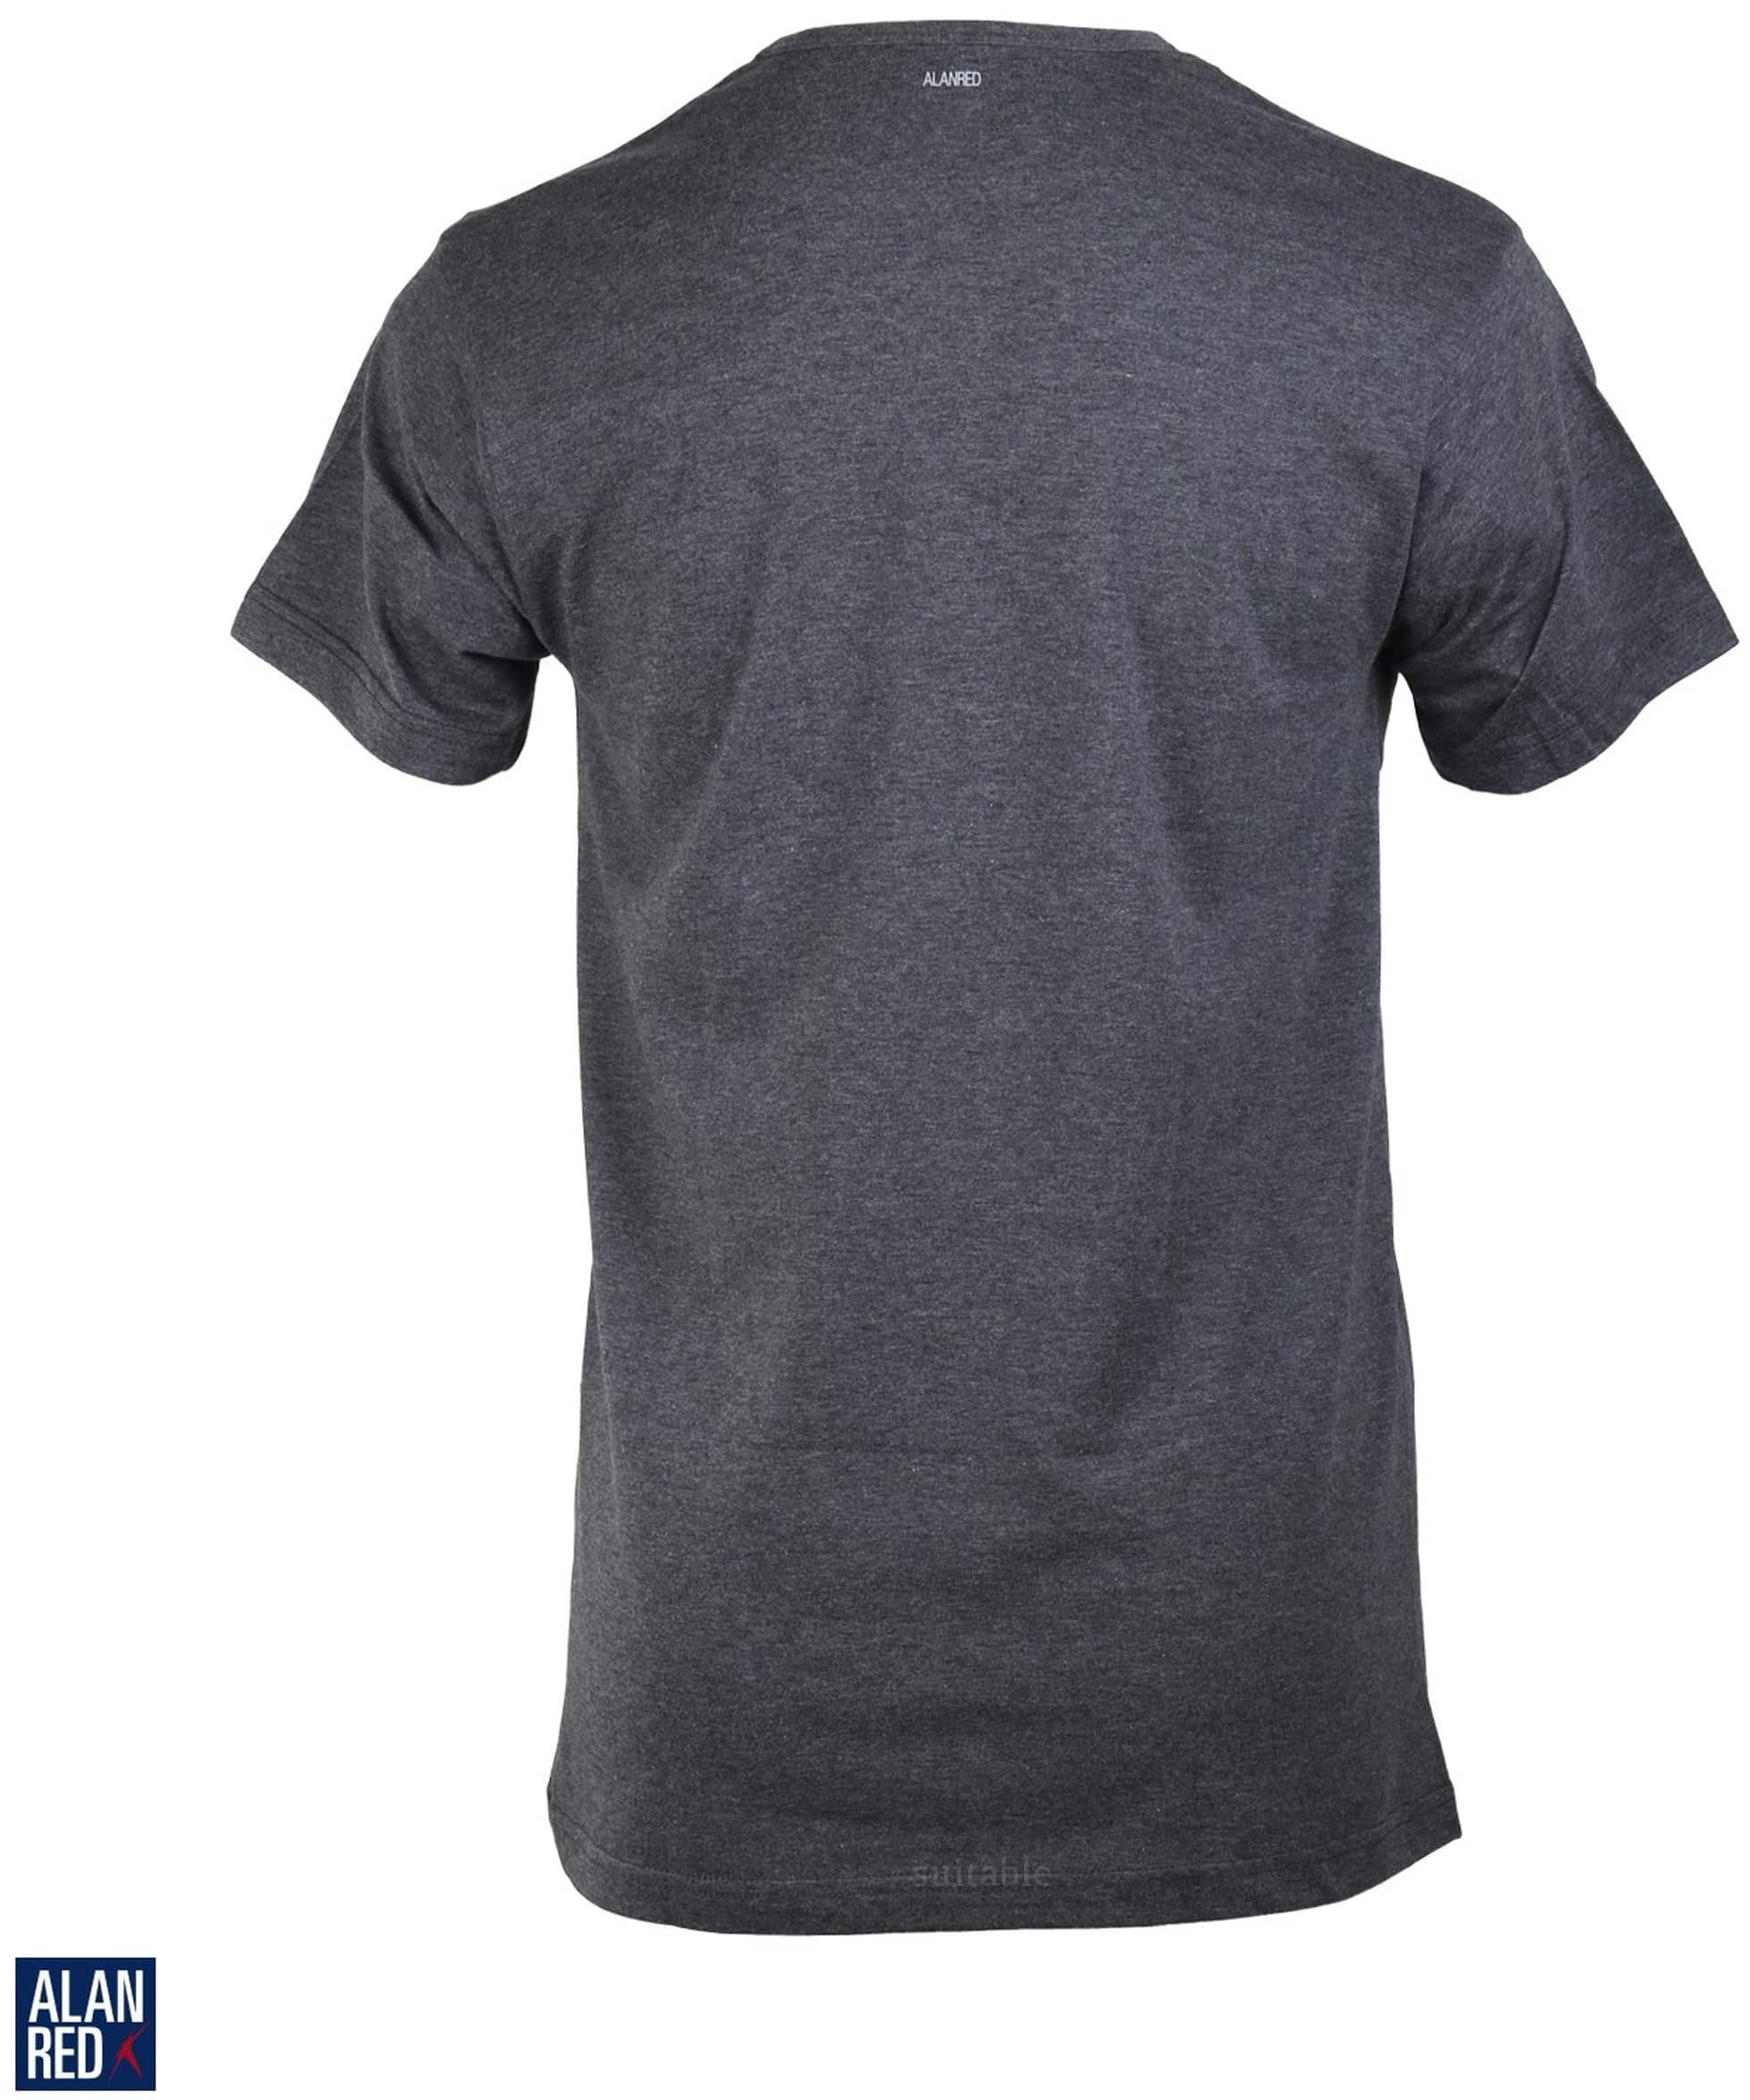 Alan Red Derby O-Neck T-shirt Dark Grey 1-Pack foto 1